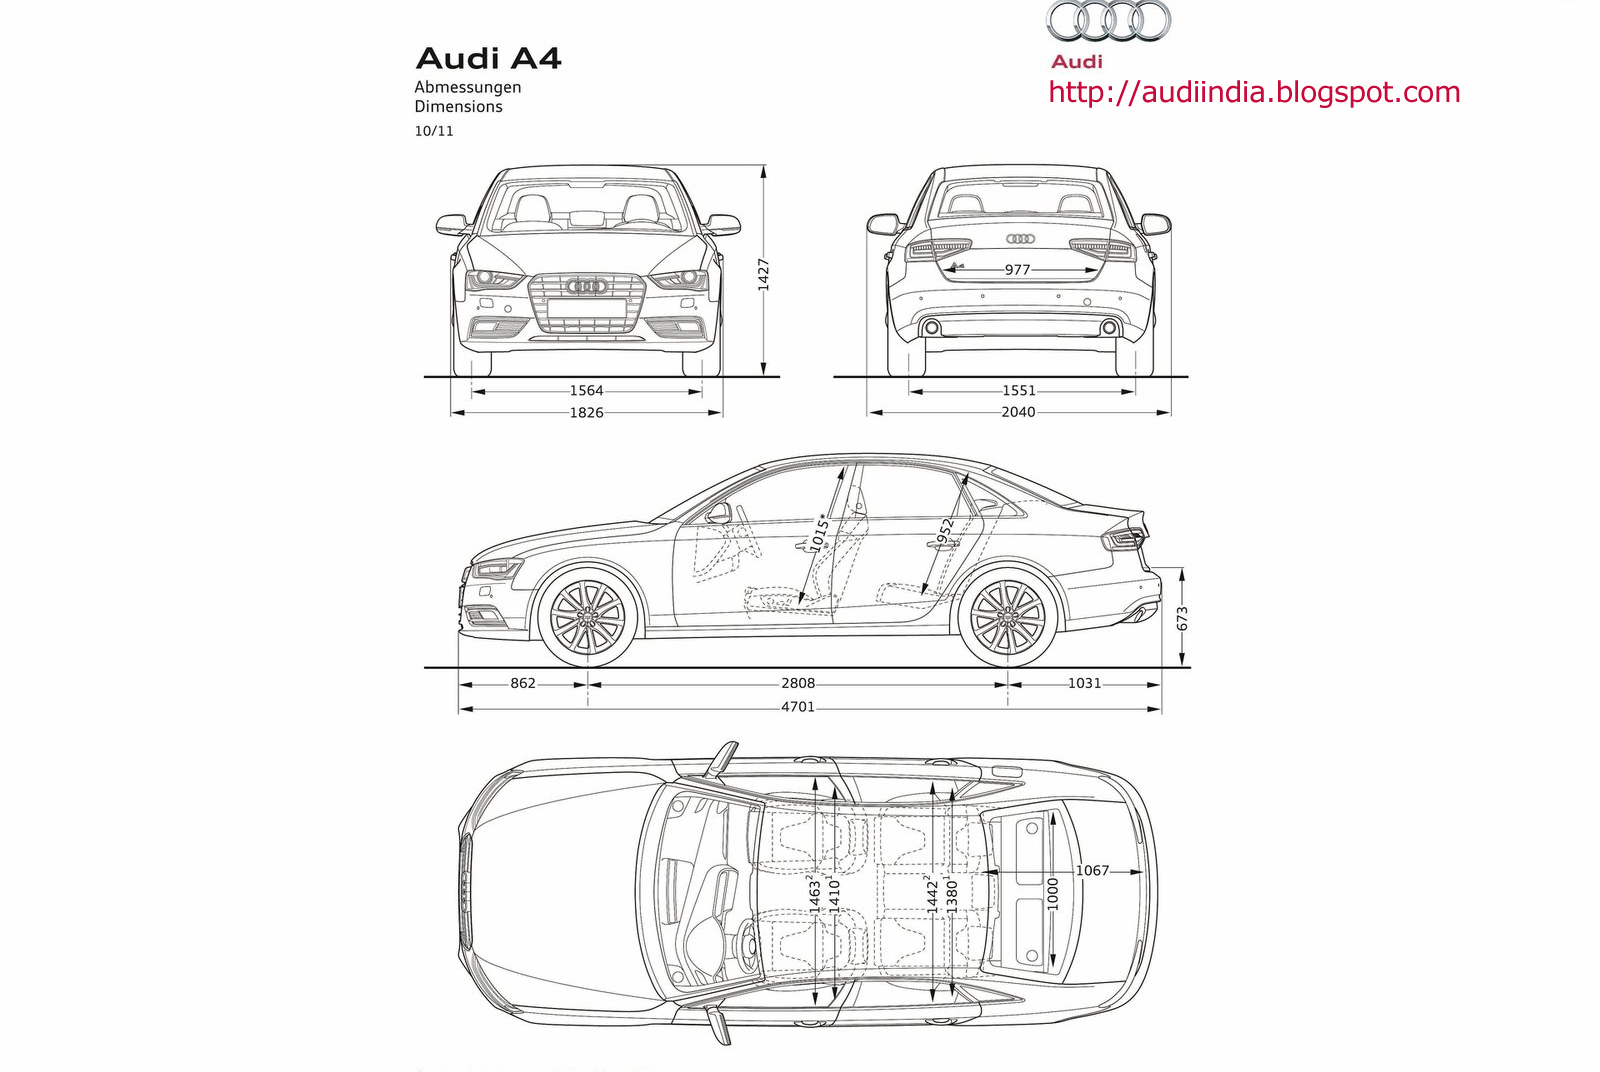 The World of Audi: A4